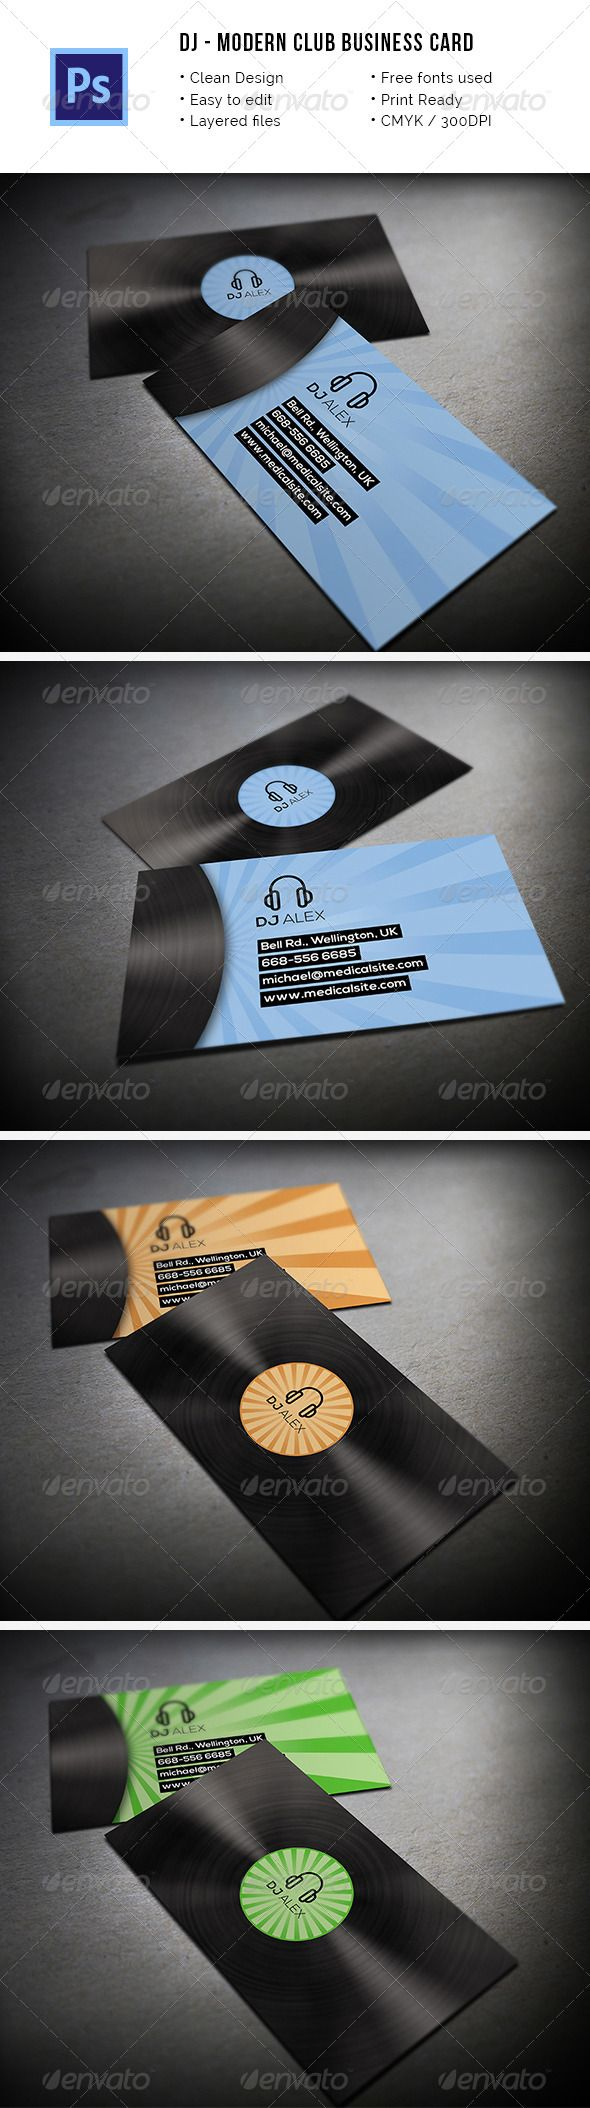 The 2151 best DJ Business Cards images on Pinterest | Card patterns ...